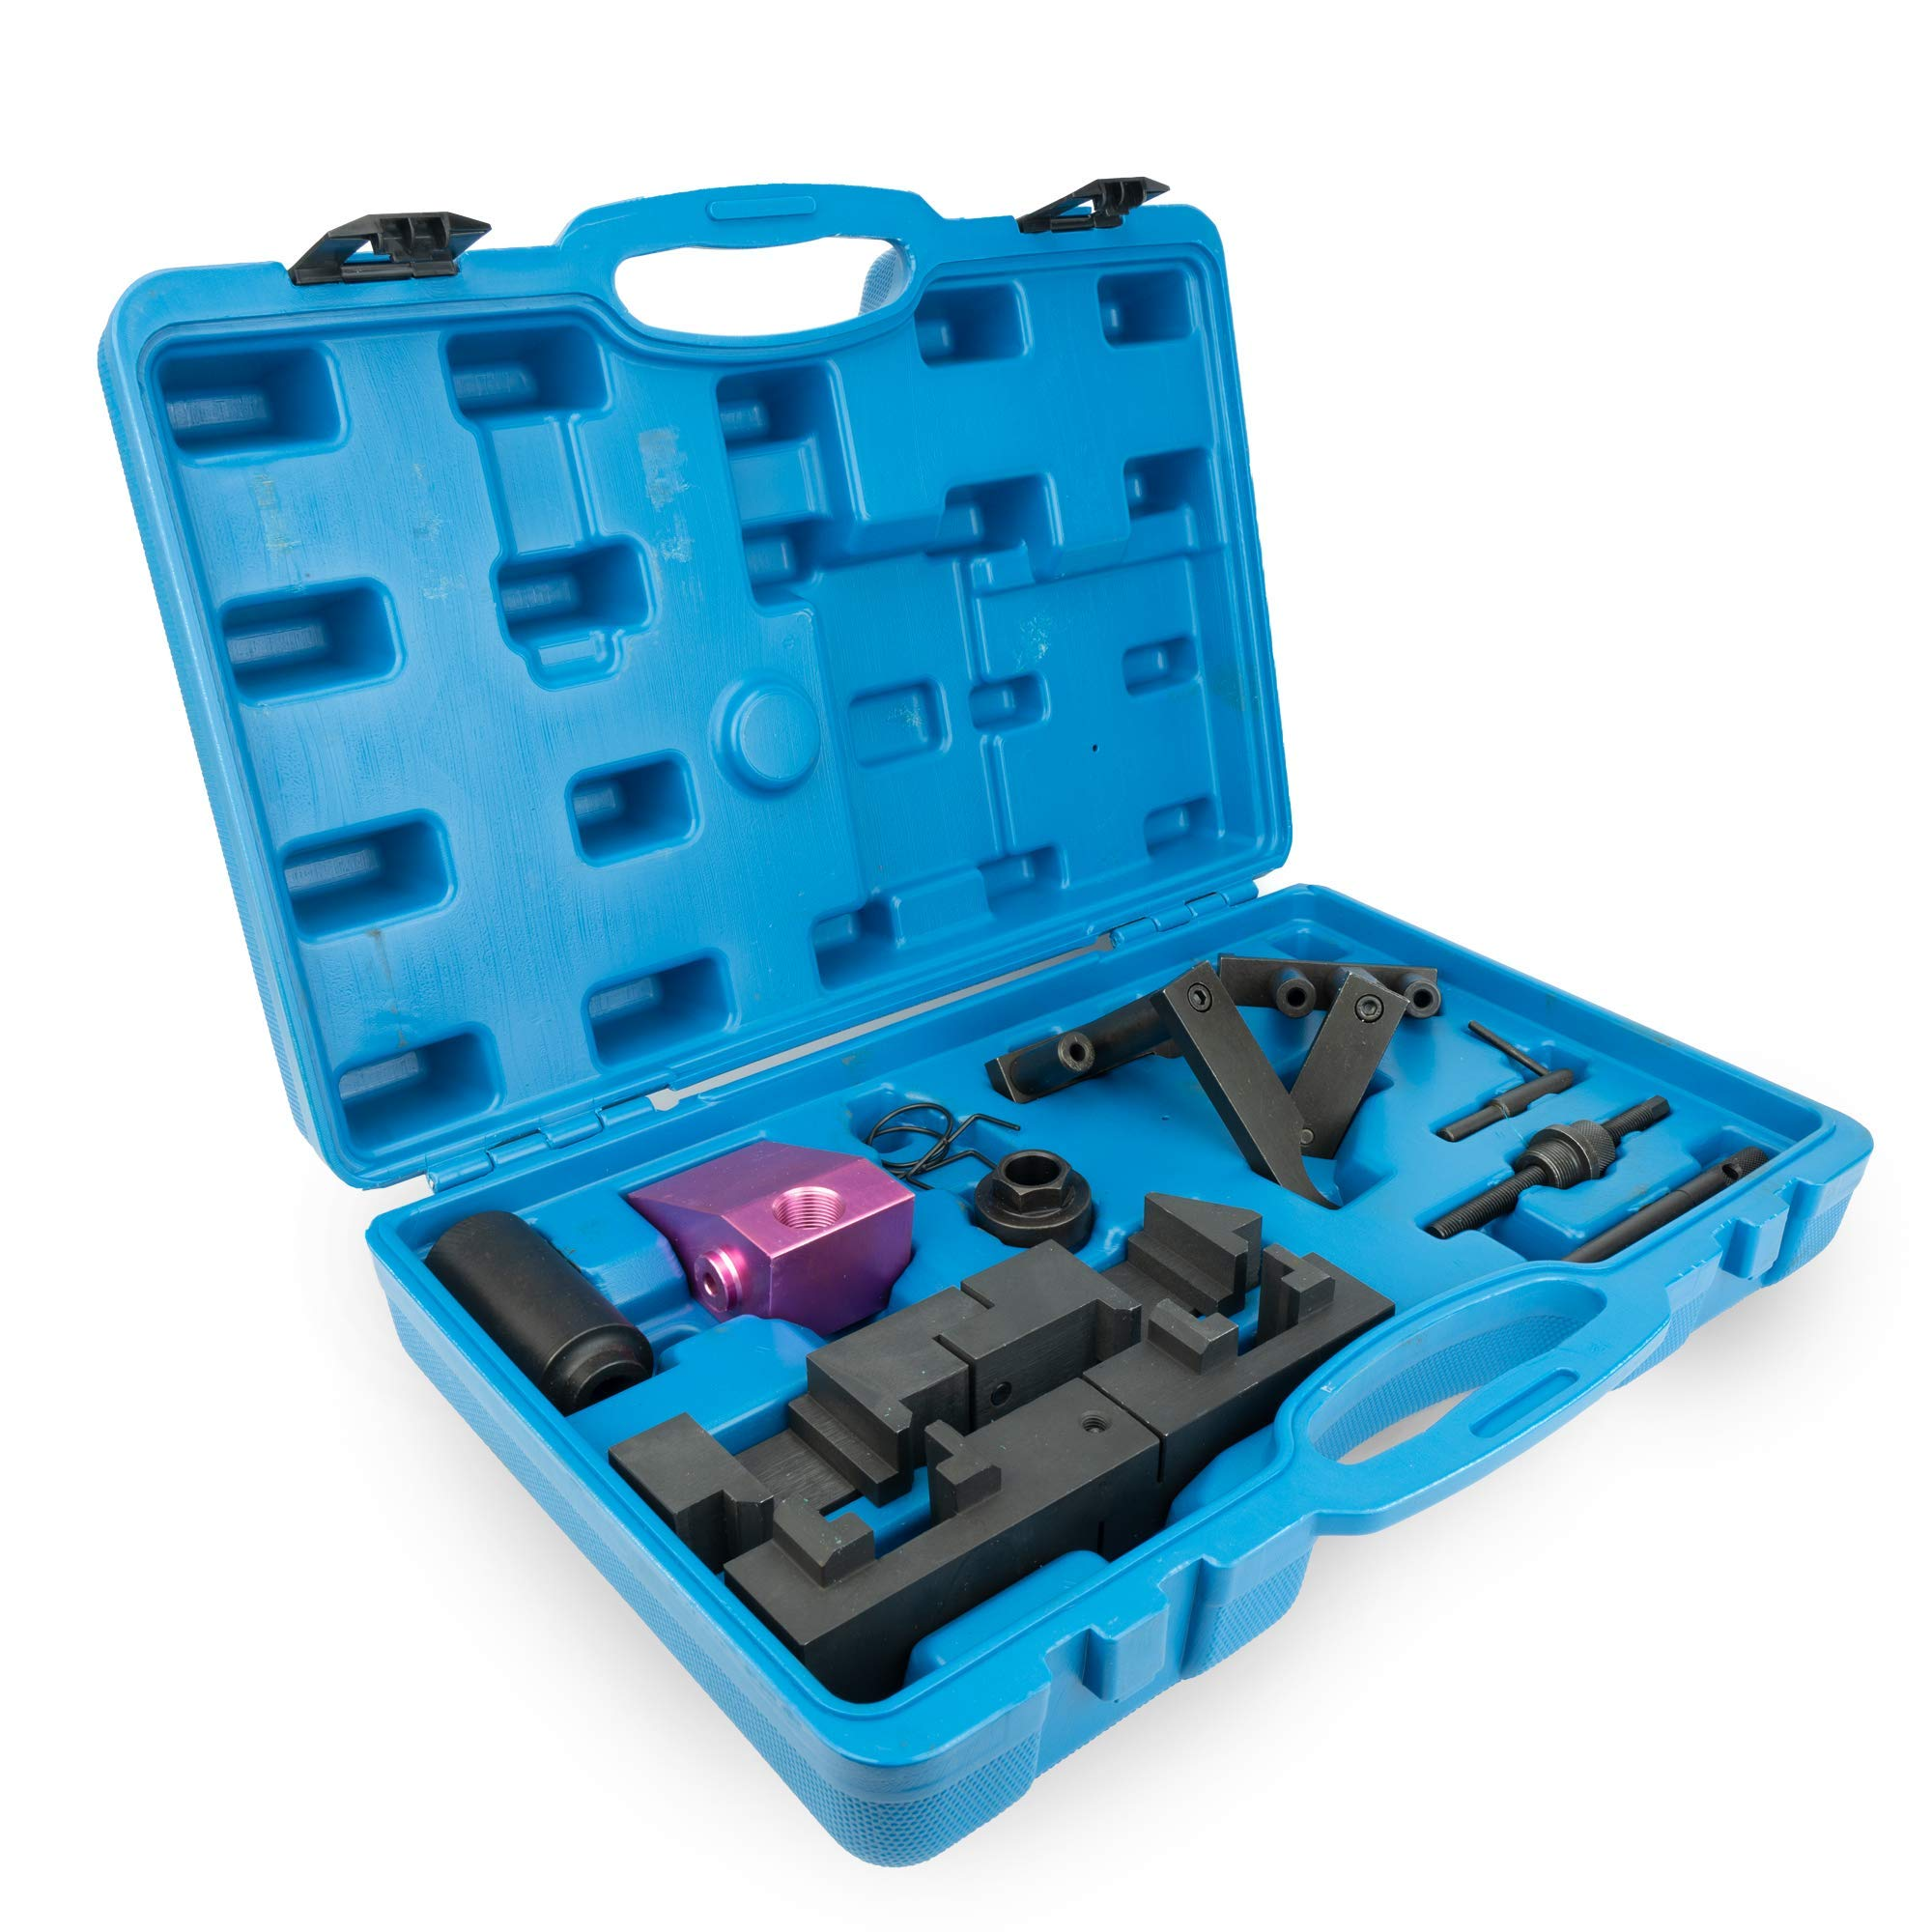 Variable Valve Timing Locking Tool Kit - Compatible With BMW M60, M62 Engines - VANOS Electromagnetic Valve Camshaft Alignment - Pin, Tensioner, Socket, Trestle, Fixture, Locking Tool & Springs by Delray Auto Parts (Image #4)